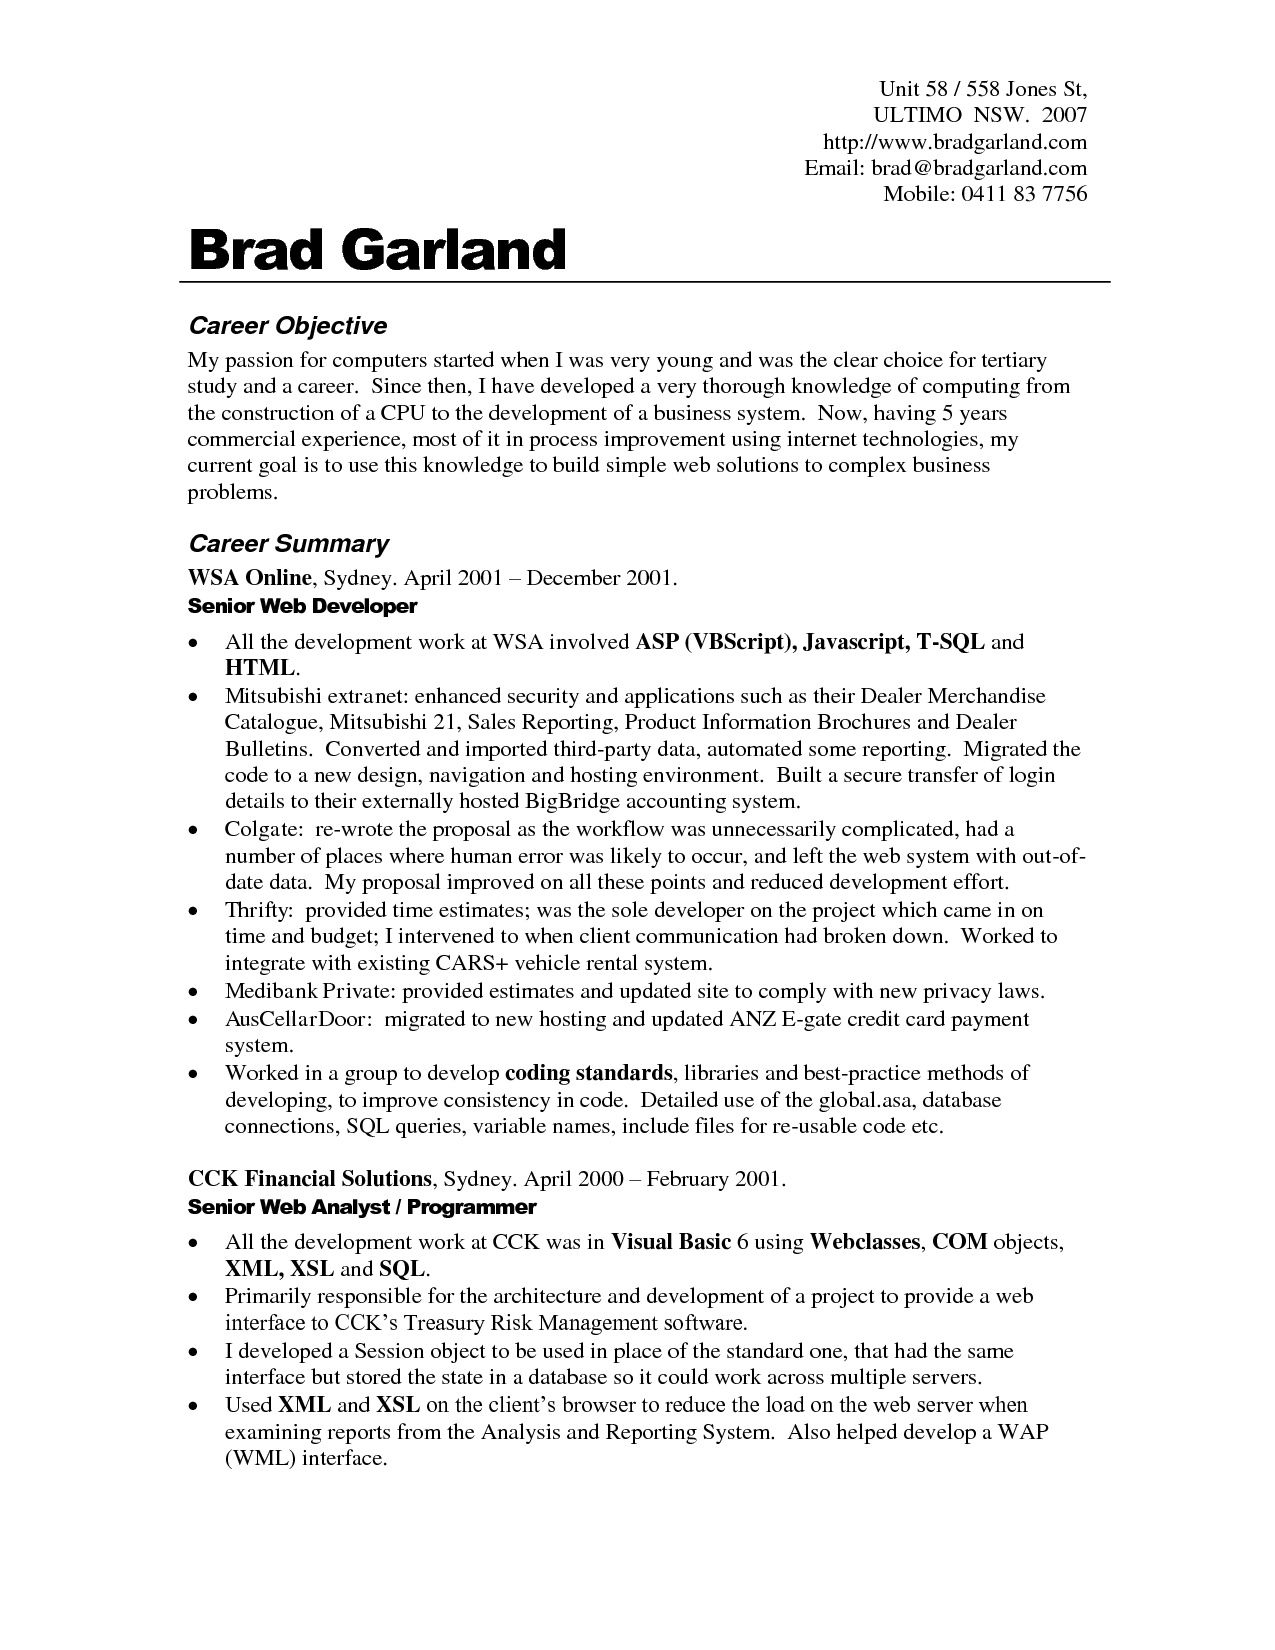 career objective resume exles how to write a career objective 25 skills resume format skills